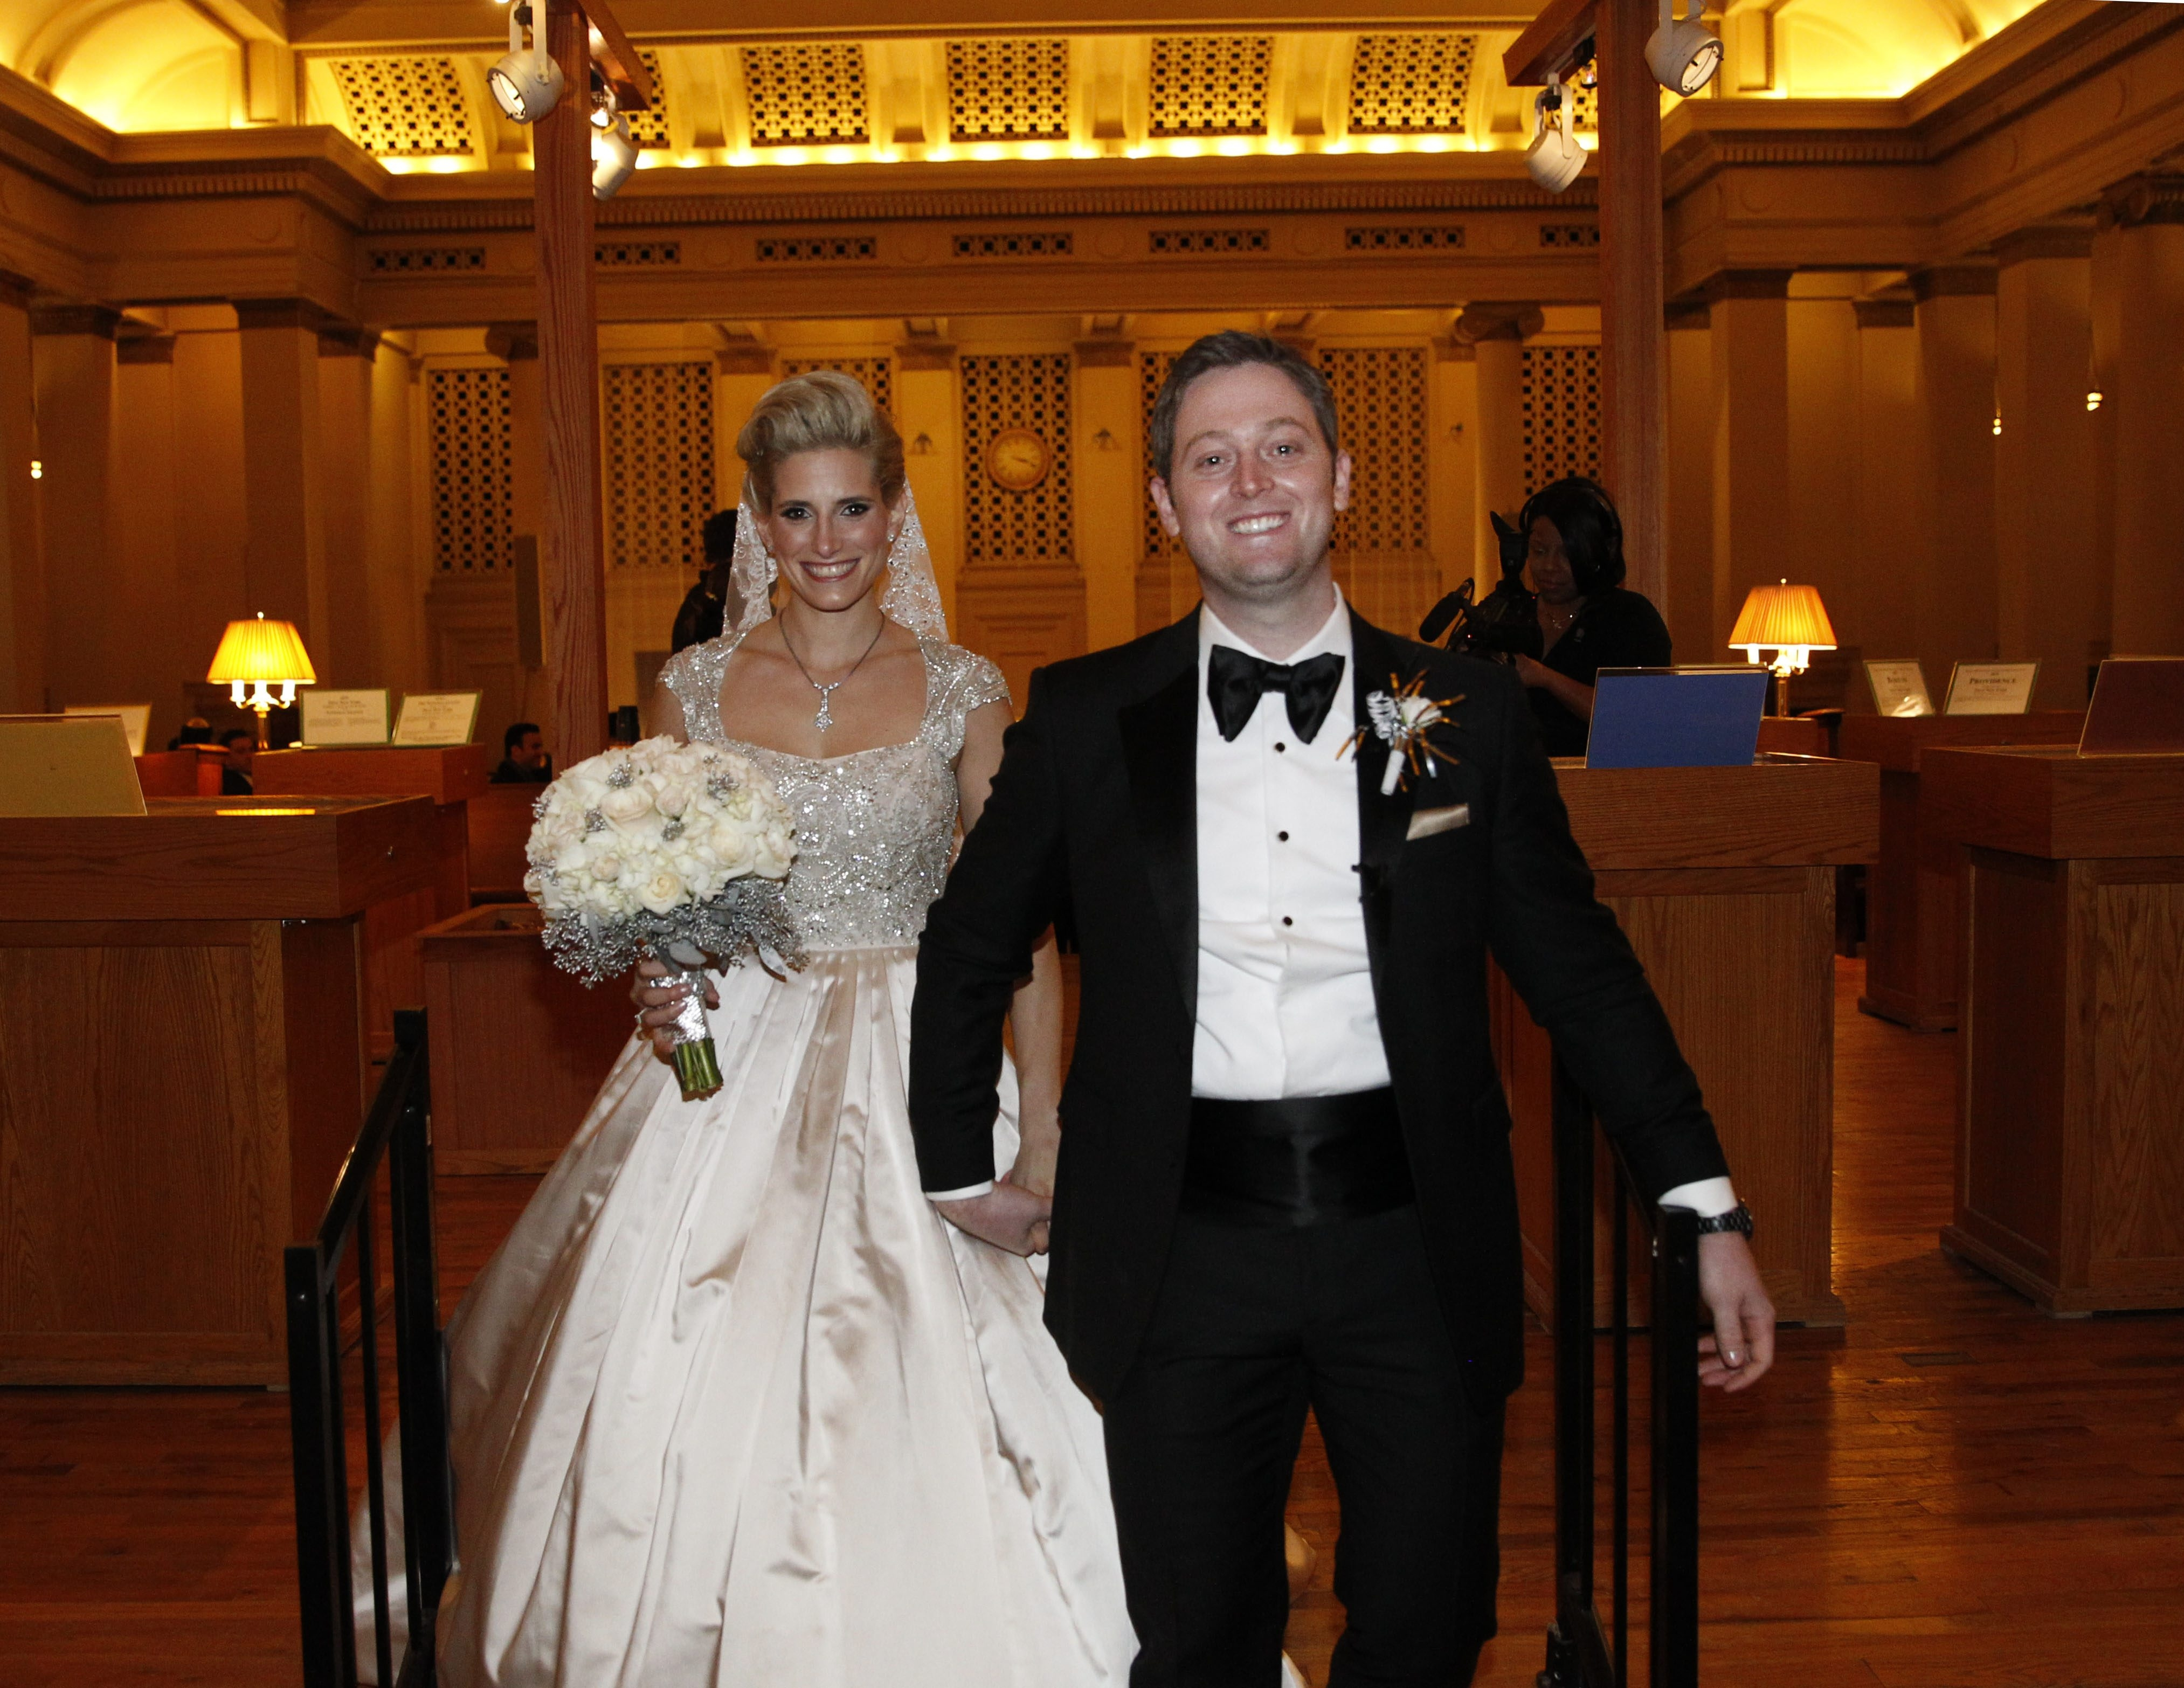 """Zabrina Reich and Frankie Jacobi are shown at their wedding in the Karpeles Manuscript Library on Dec. 31, 2014. The bride, whose search for a wedding gown was seen on the reality show """"Say Yes To The Dress,"""" will be seen on a new episode of the TLC show Friday. (Sharon Cantillon/News file photo)"""